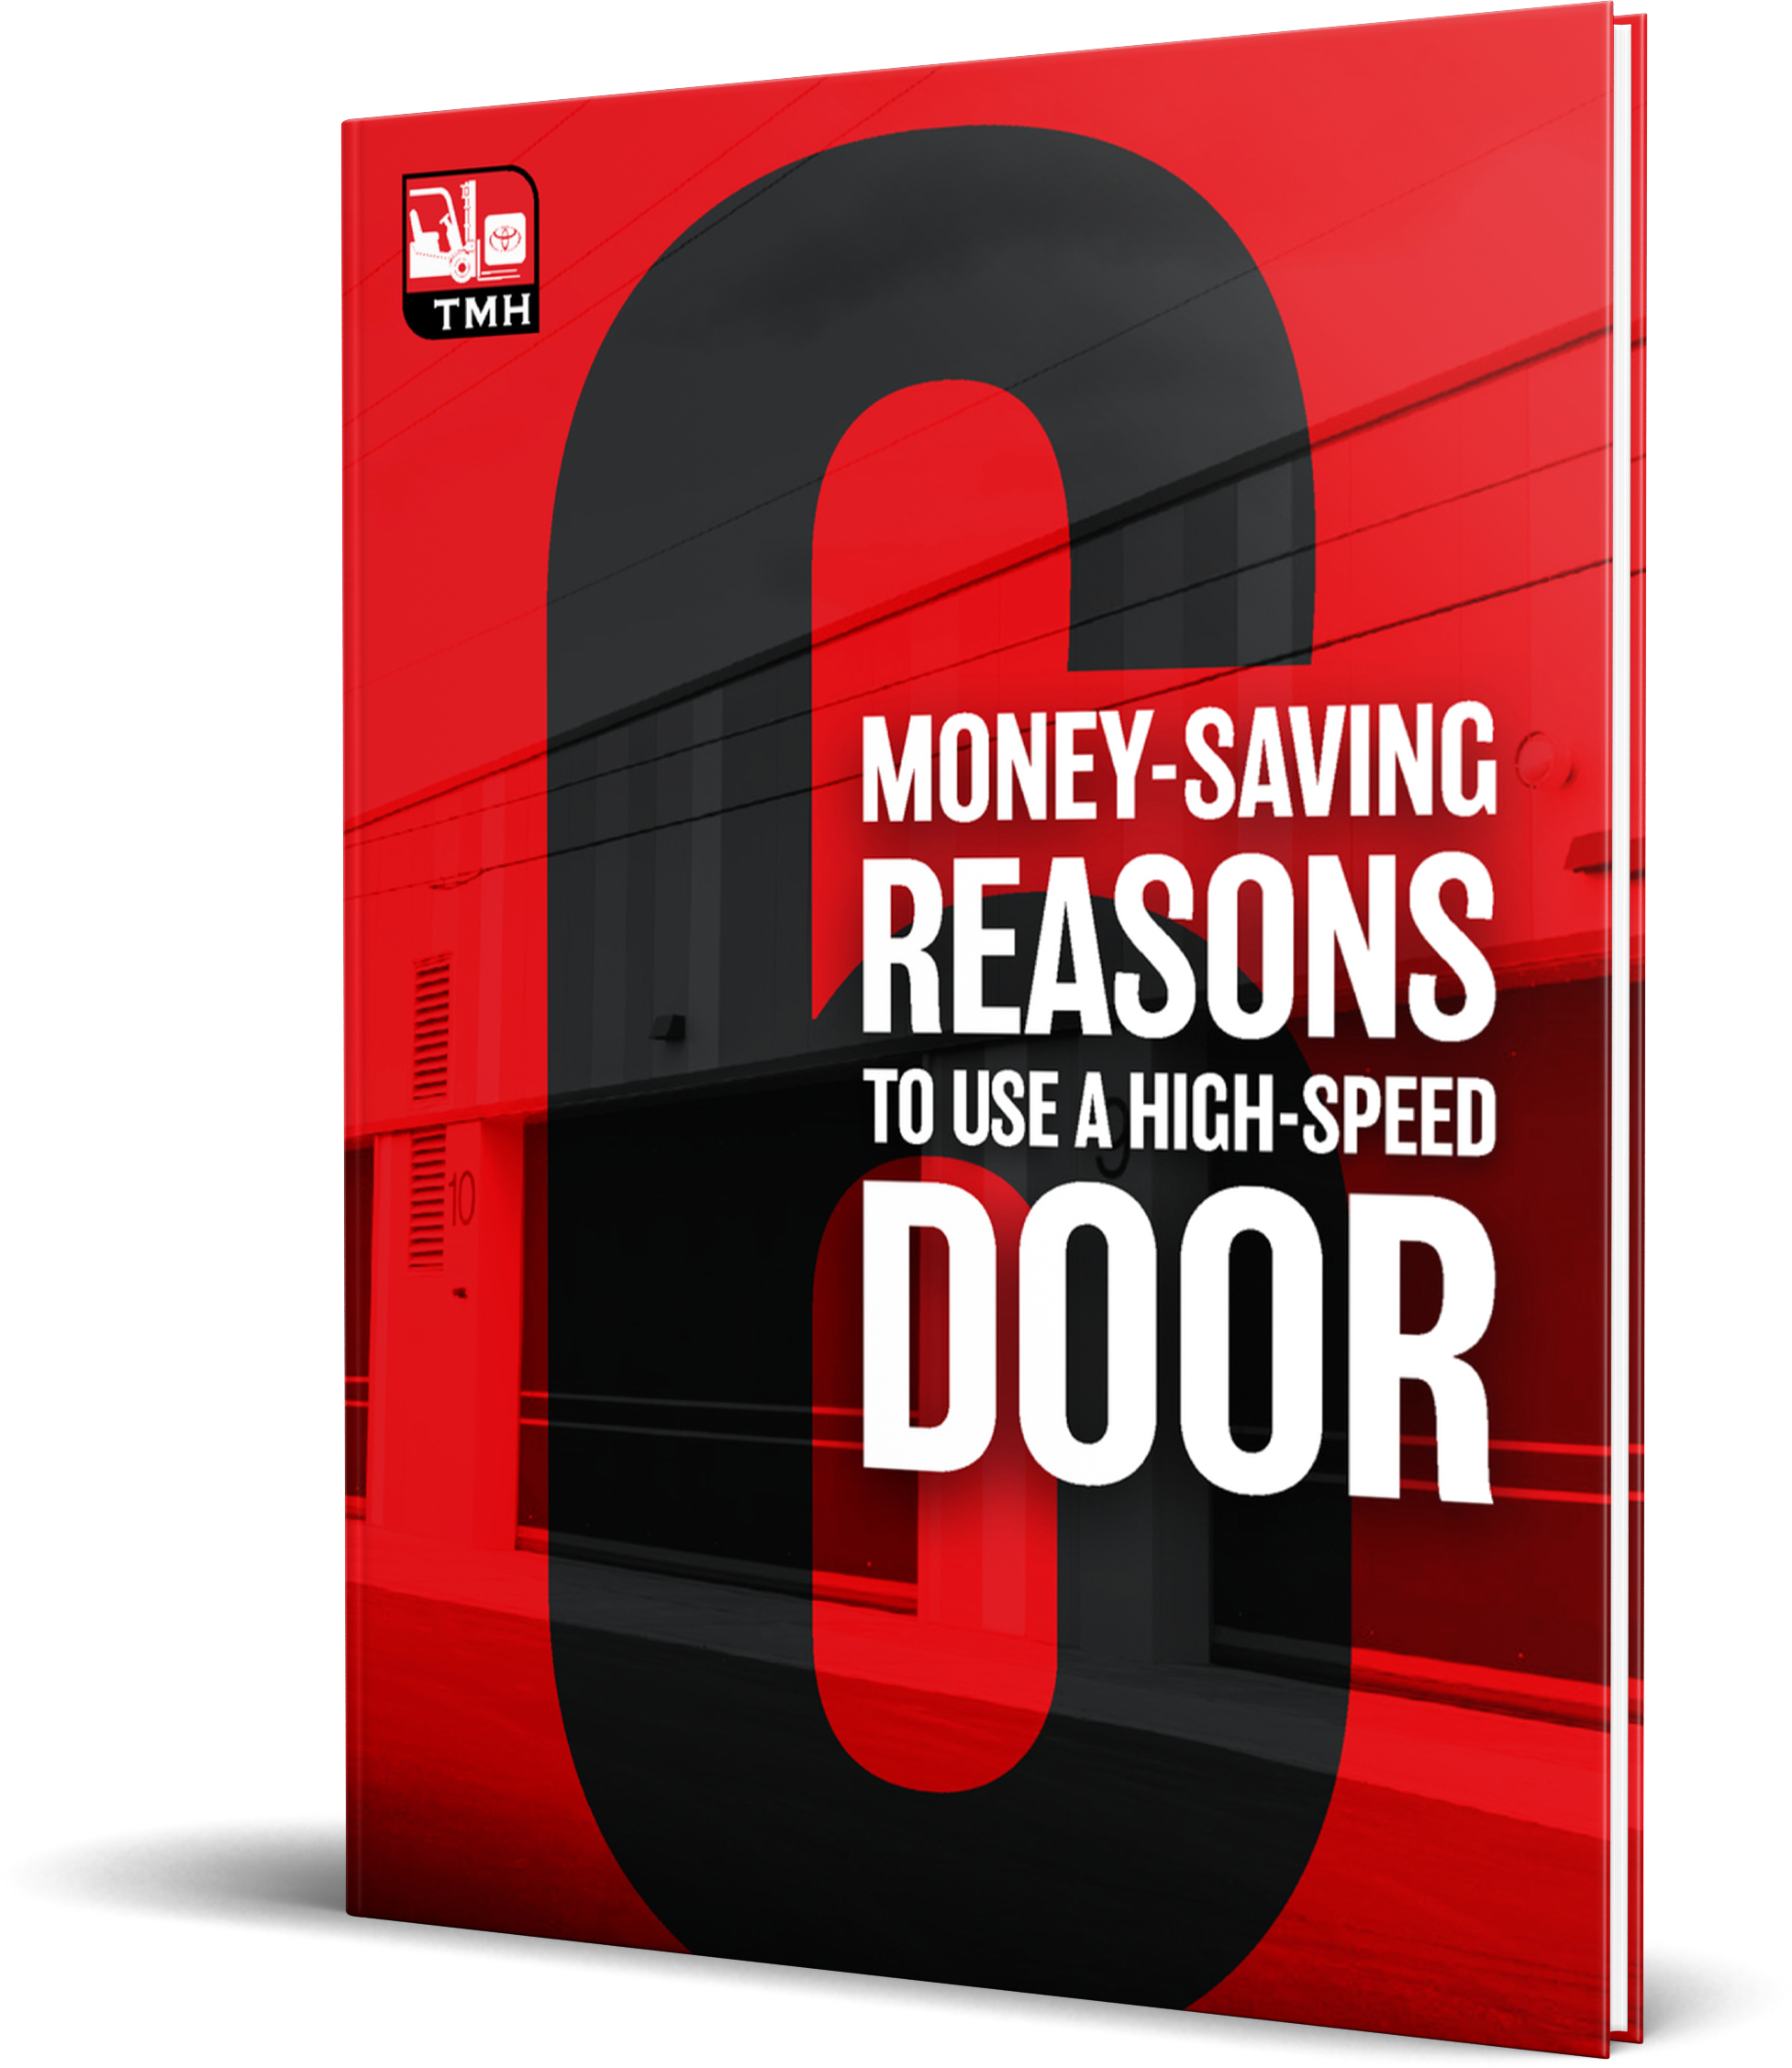 6-money-saving-reasons-high-speed-door